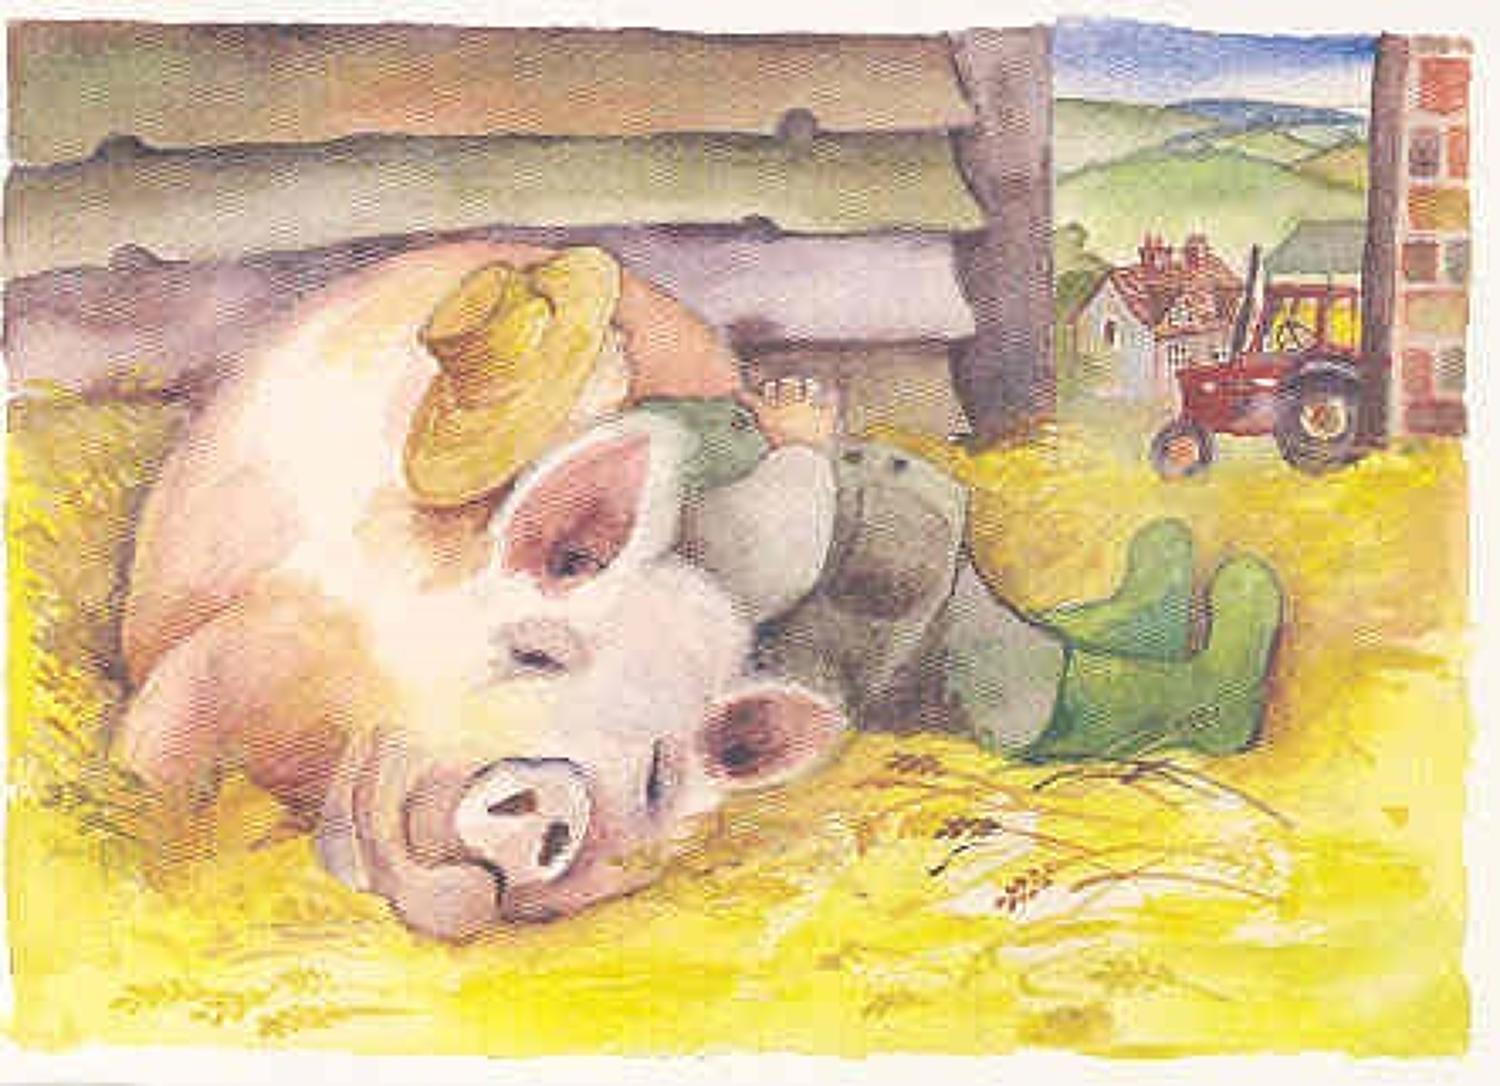 The farmer & his pig